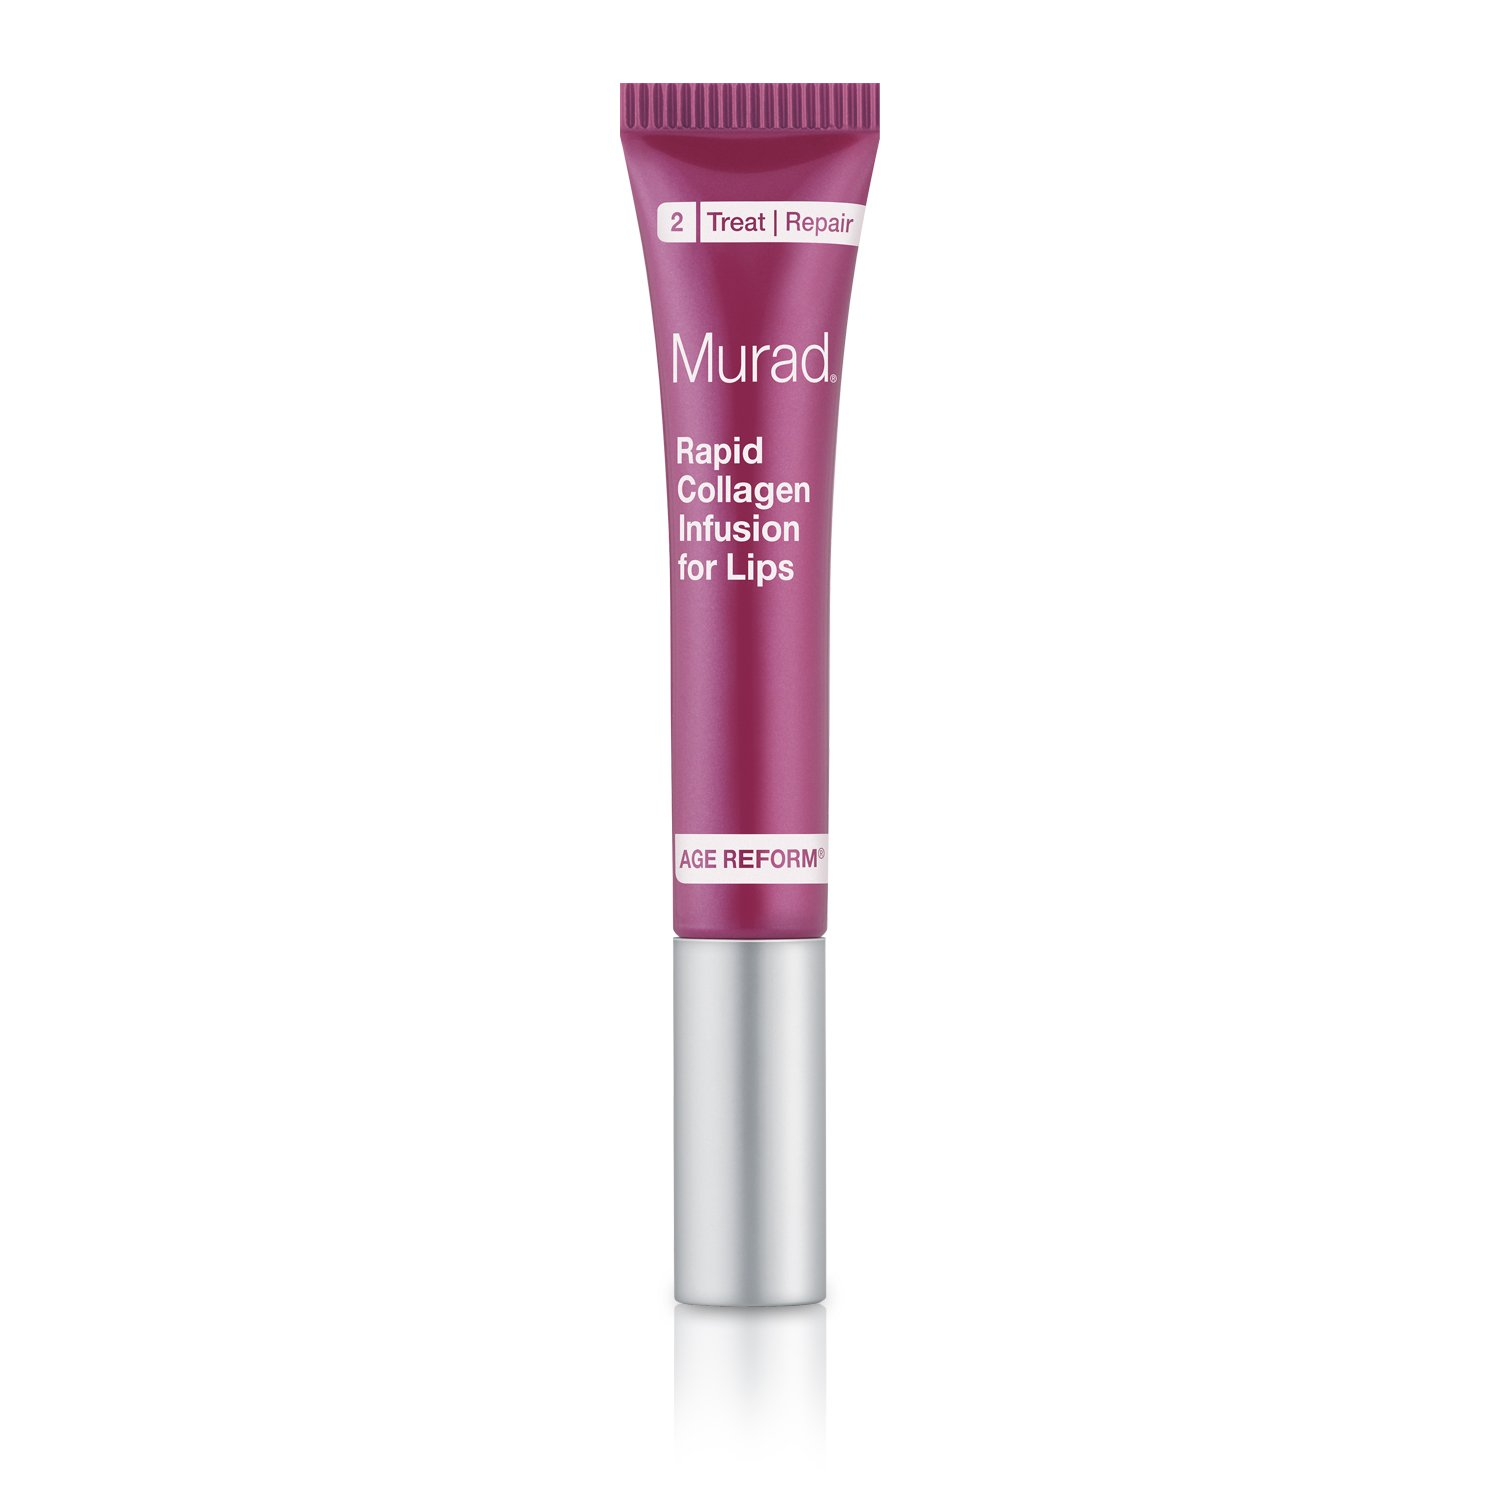 Murad Rapid Lips Collagen Infusion, 0.33 Ounce